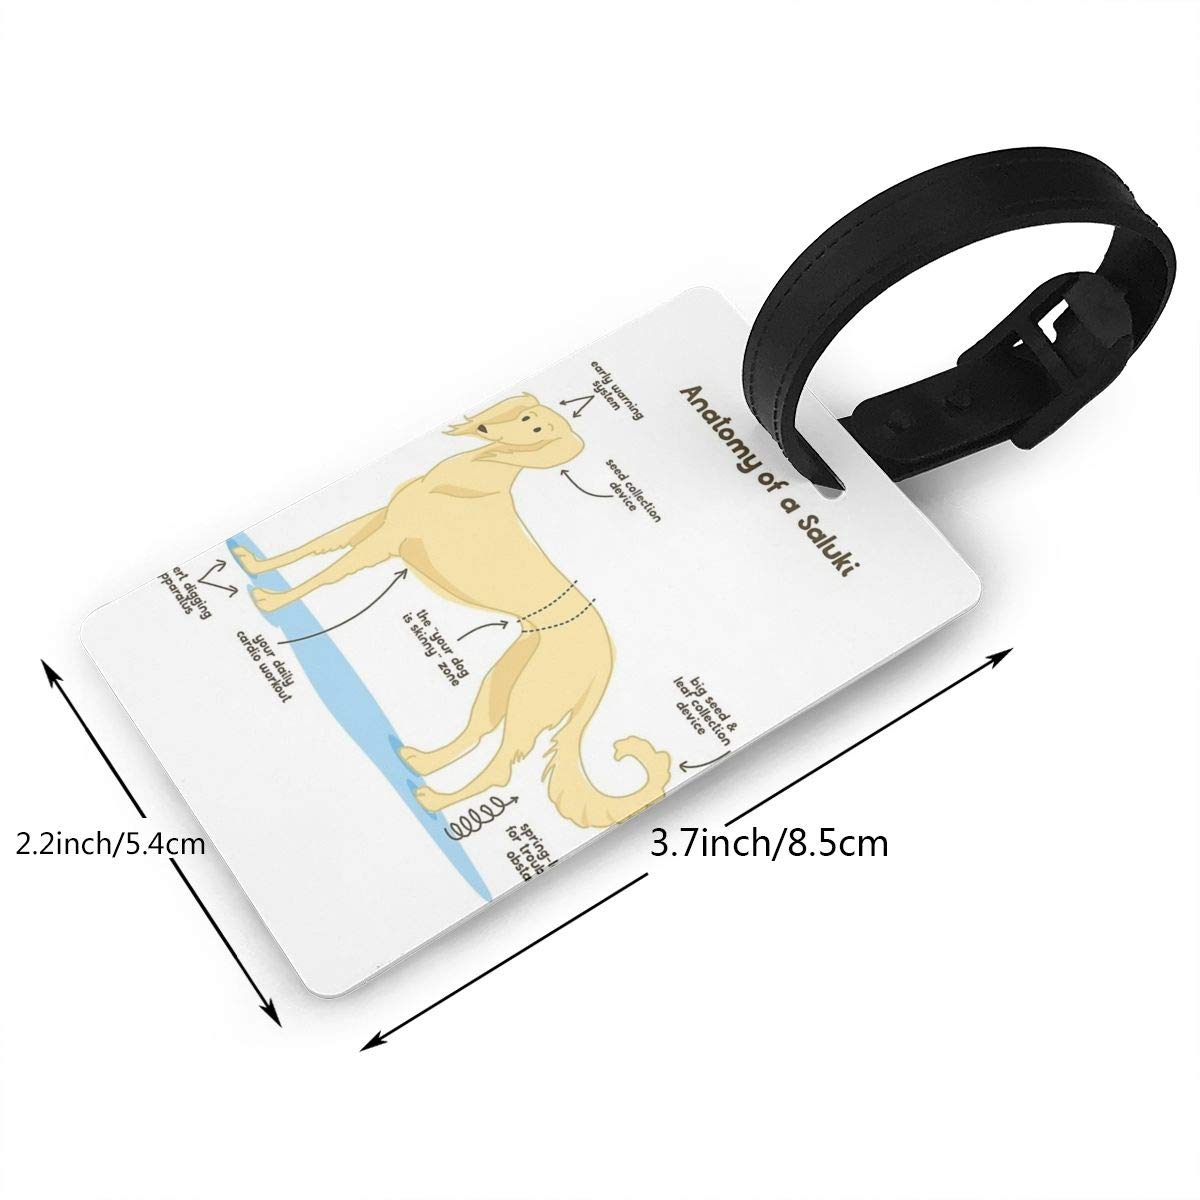 Anatomy Of A Saluki Luggage Tags Suitcase Labels Bag Travel Accessories Set of 2